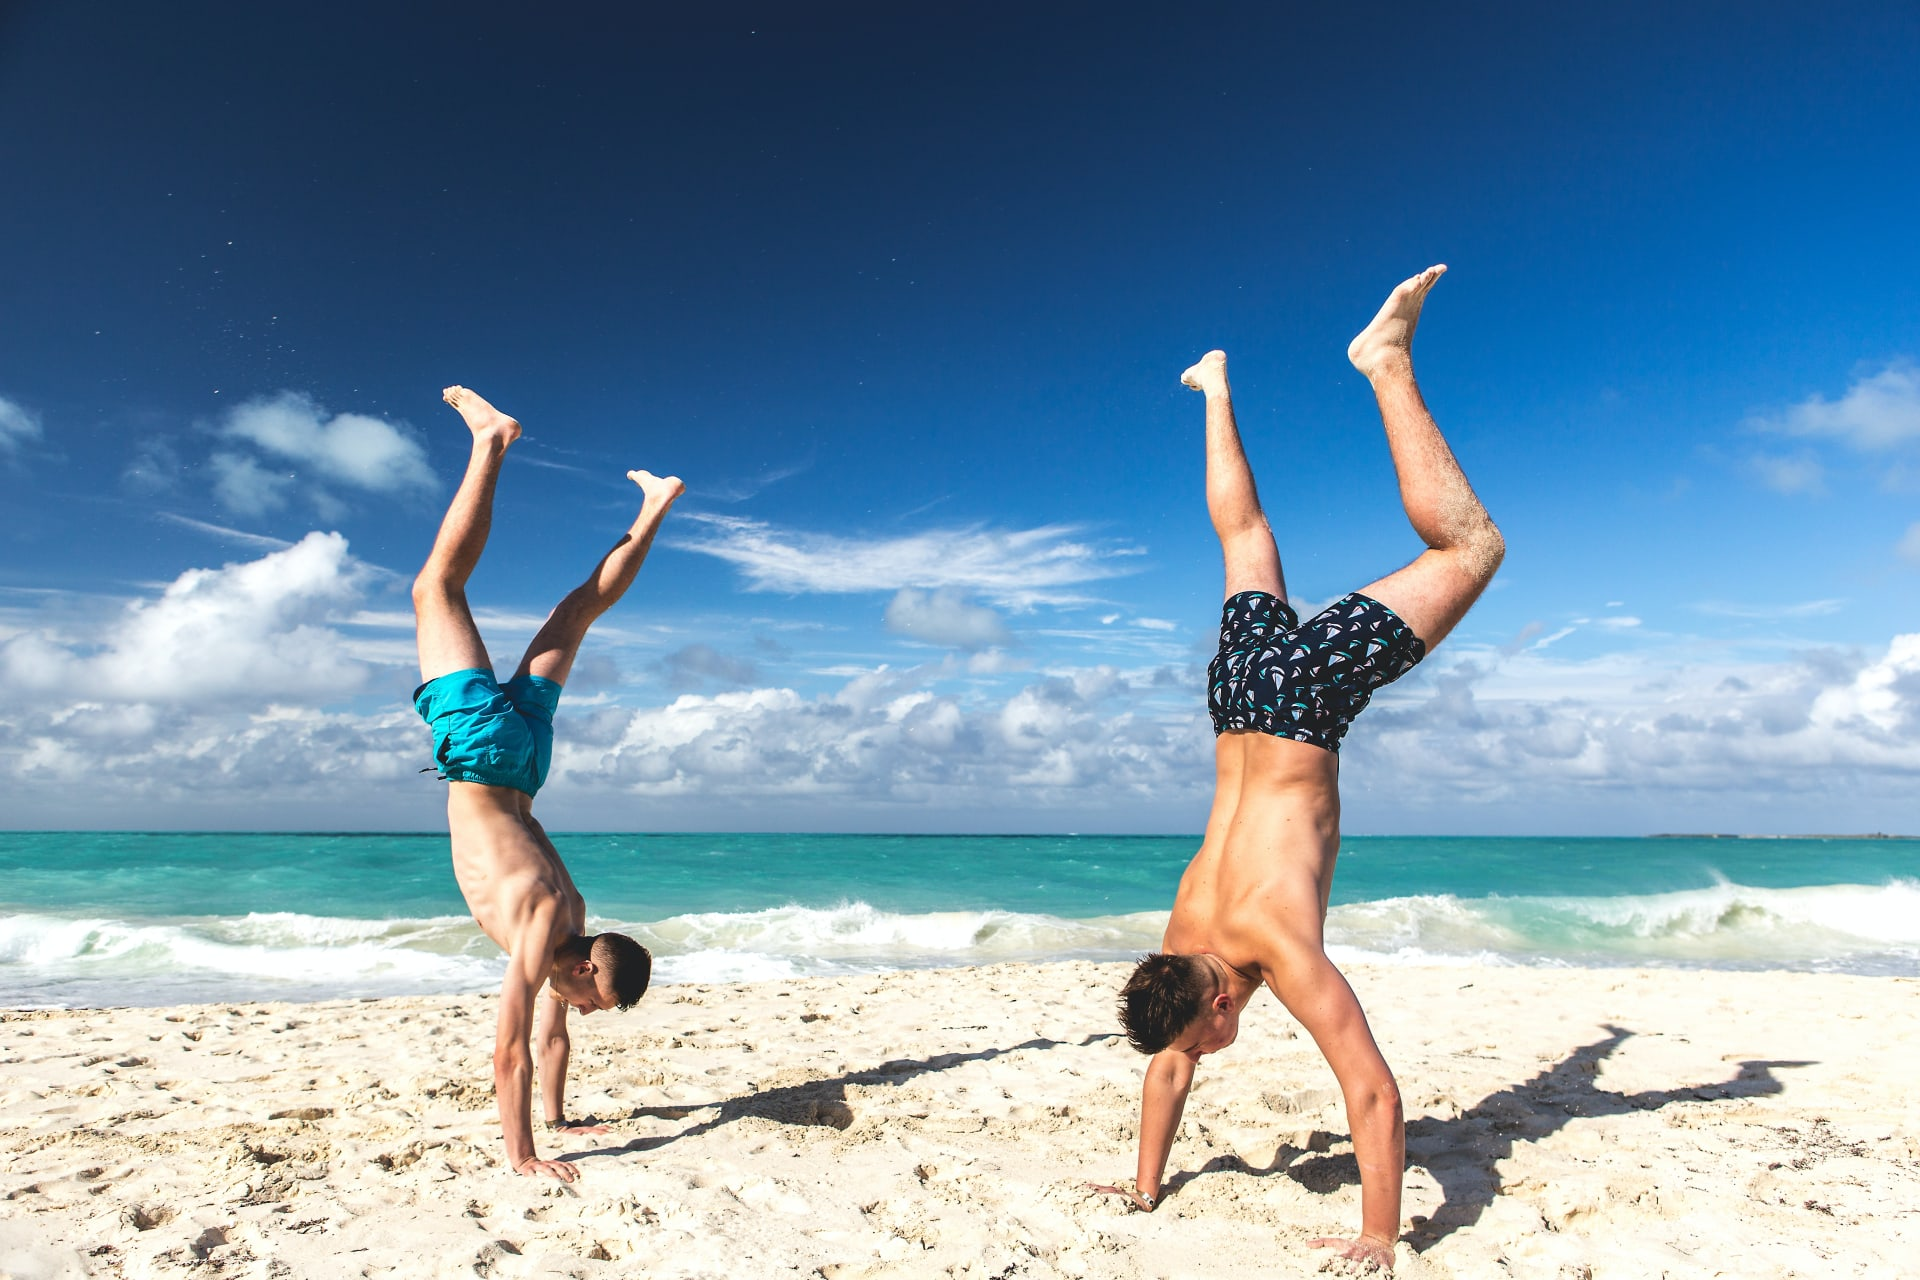 Two guys standing on their hands on the beach